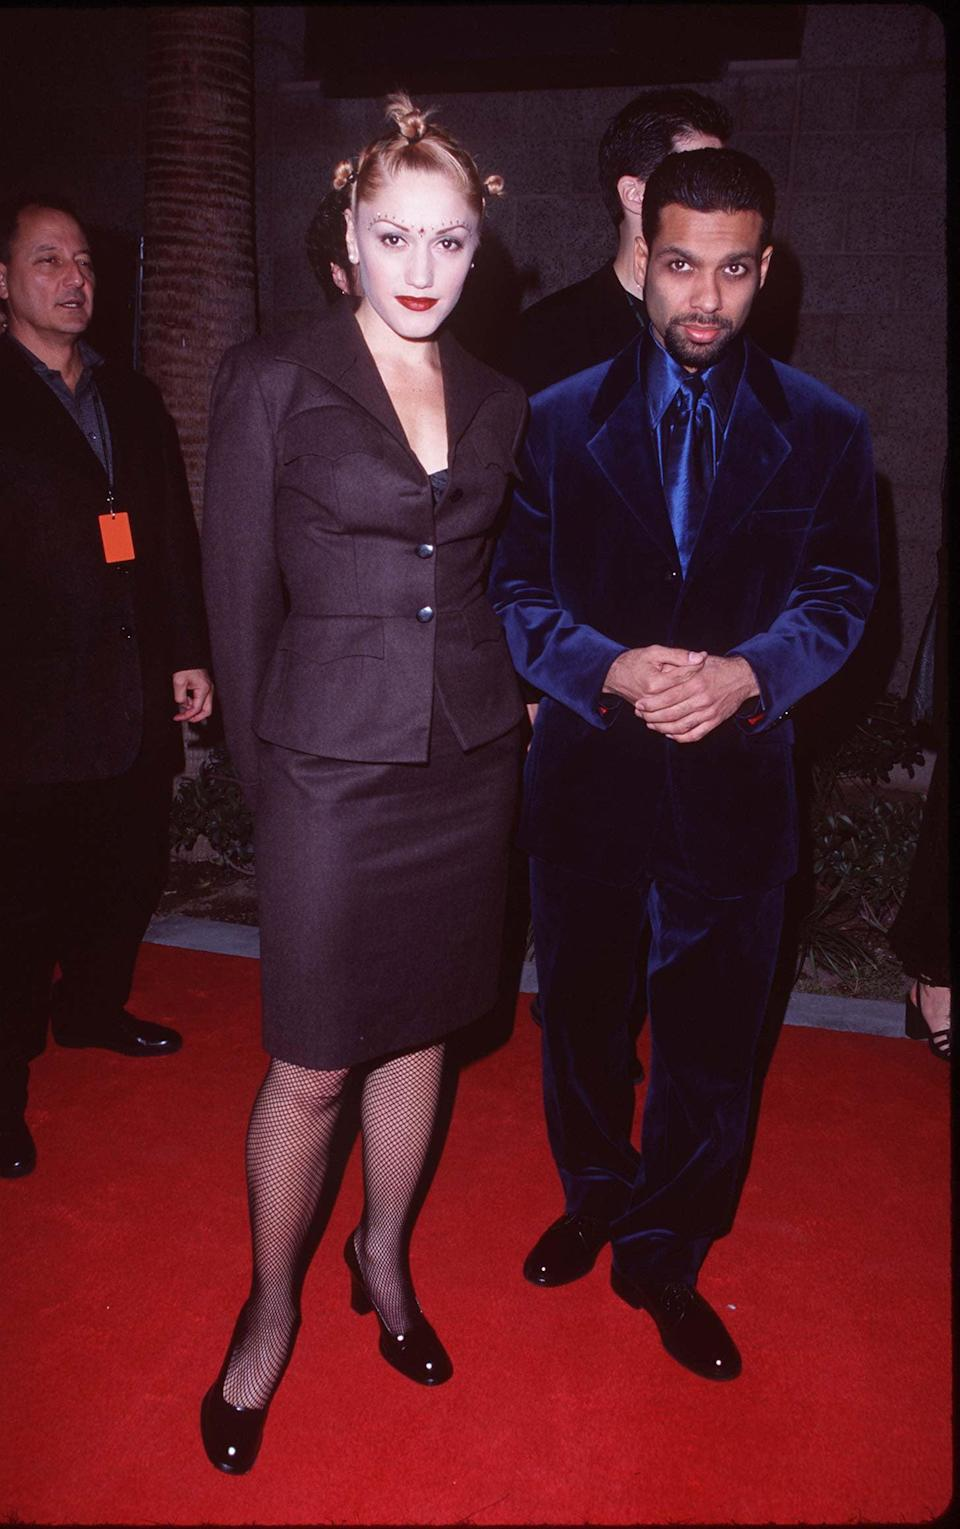 """<p>Stefani's first major public relationship was with Kanal, her bandmate from No Doubt. They dated from 1987 until 1994, at which point Kanal ended the relationship - <a href=""""https://web.archive.org/web/20060614111431/http://www.msnbc.msn.com/id/5783821/site/newsweek/"""" class=""""link rapid-noclick-resp"""" rel=""""nofollow noopener"""" target=""""_blank"""" data-ylk=""""slk:which nearly ended the band, too"""">which nearly ended the band, too</a>, according to a 2004 <strong>Newsweek</strong> article. """"I was completely passive, no goals. I was in love with Tony and just happy to be in the band. Then there was three years writing in our garage until [the 1995 album] <strong>Tragic Kingdom</strong> came out,"""" Stefani told the magazine.</p> <p>During their relationship, Stefani told <strong>The Guardian</strong>, she was less concerned with her career in music and more about the future of their romance. """"<a href=""""http://www.theguardian.com/music/2005/jan/30/popandrock.gwenstefani"""" class=""""link rapid-noclick-resp"""" rel=""""nofollow noopener"""" target=""""_blank"""" data-ylk=""""slk:All I ever did was look at Tony"""">All I ever did was look at Tony</a> and pray that God would let me have a baby with him."""" The band did survive their breakup, and they continued performing together until the band went on hiatus in 2015.</p>"""